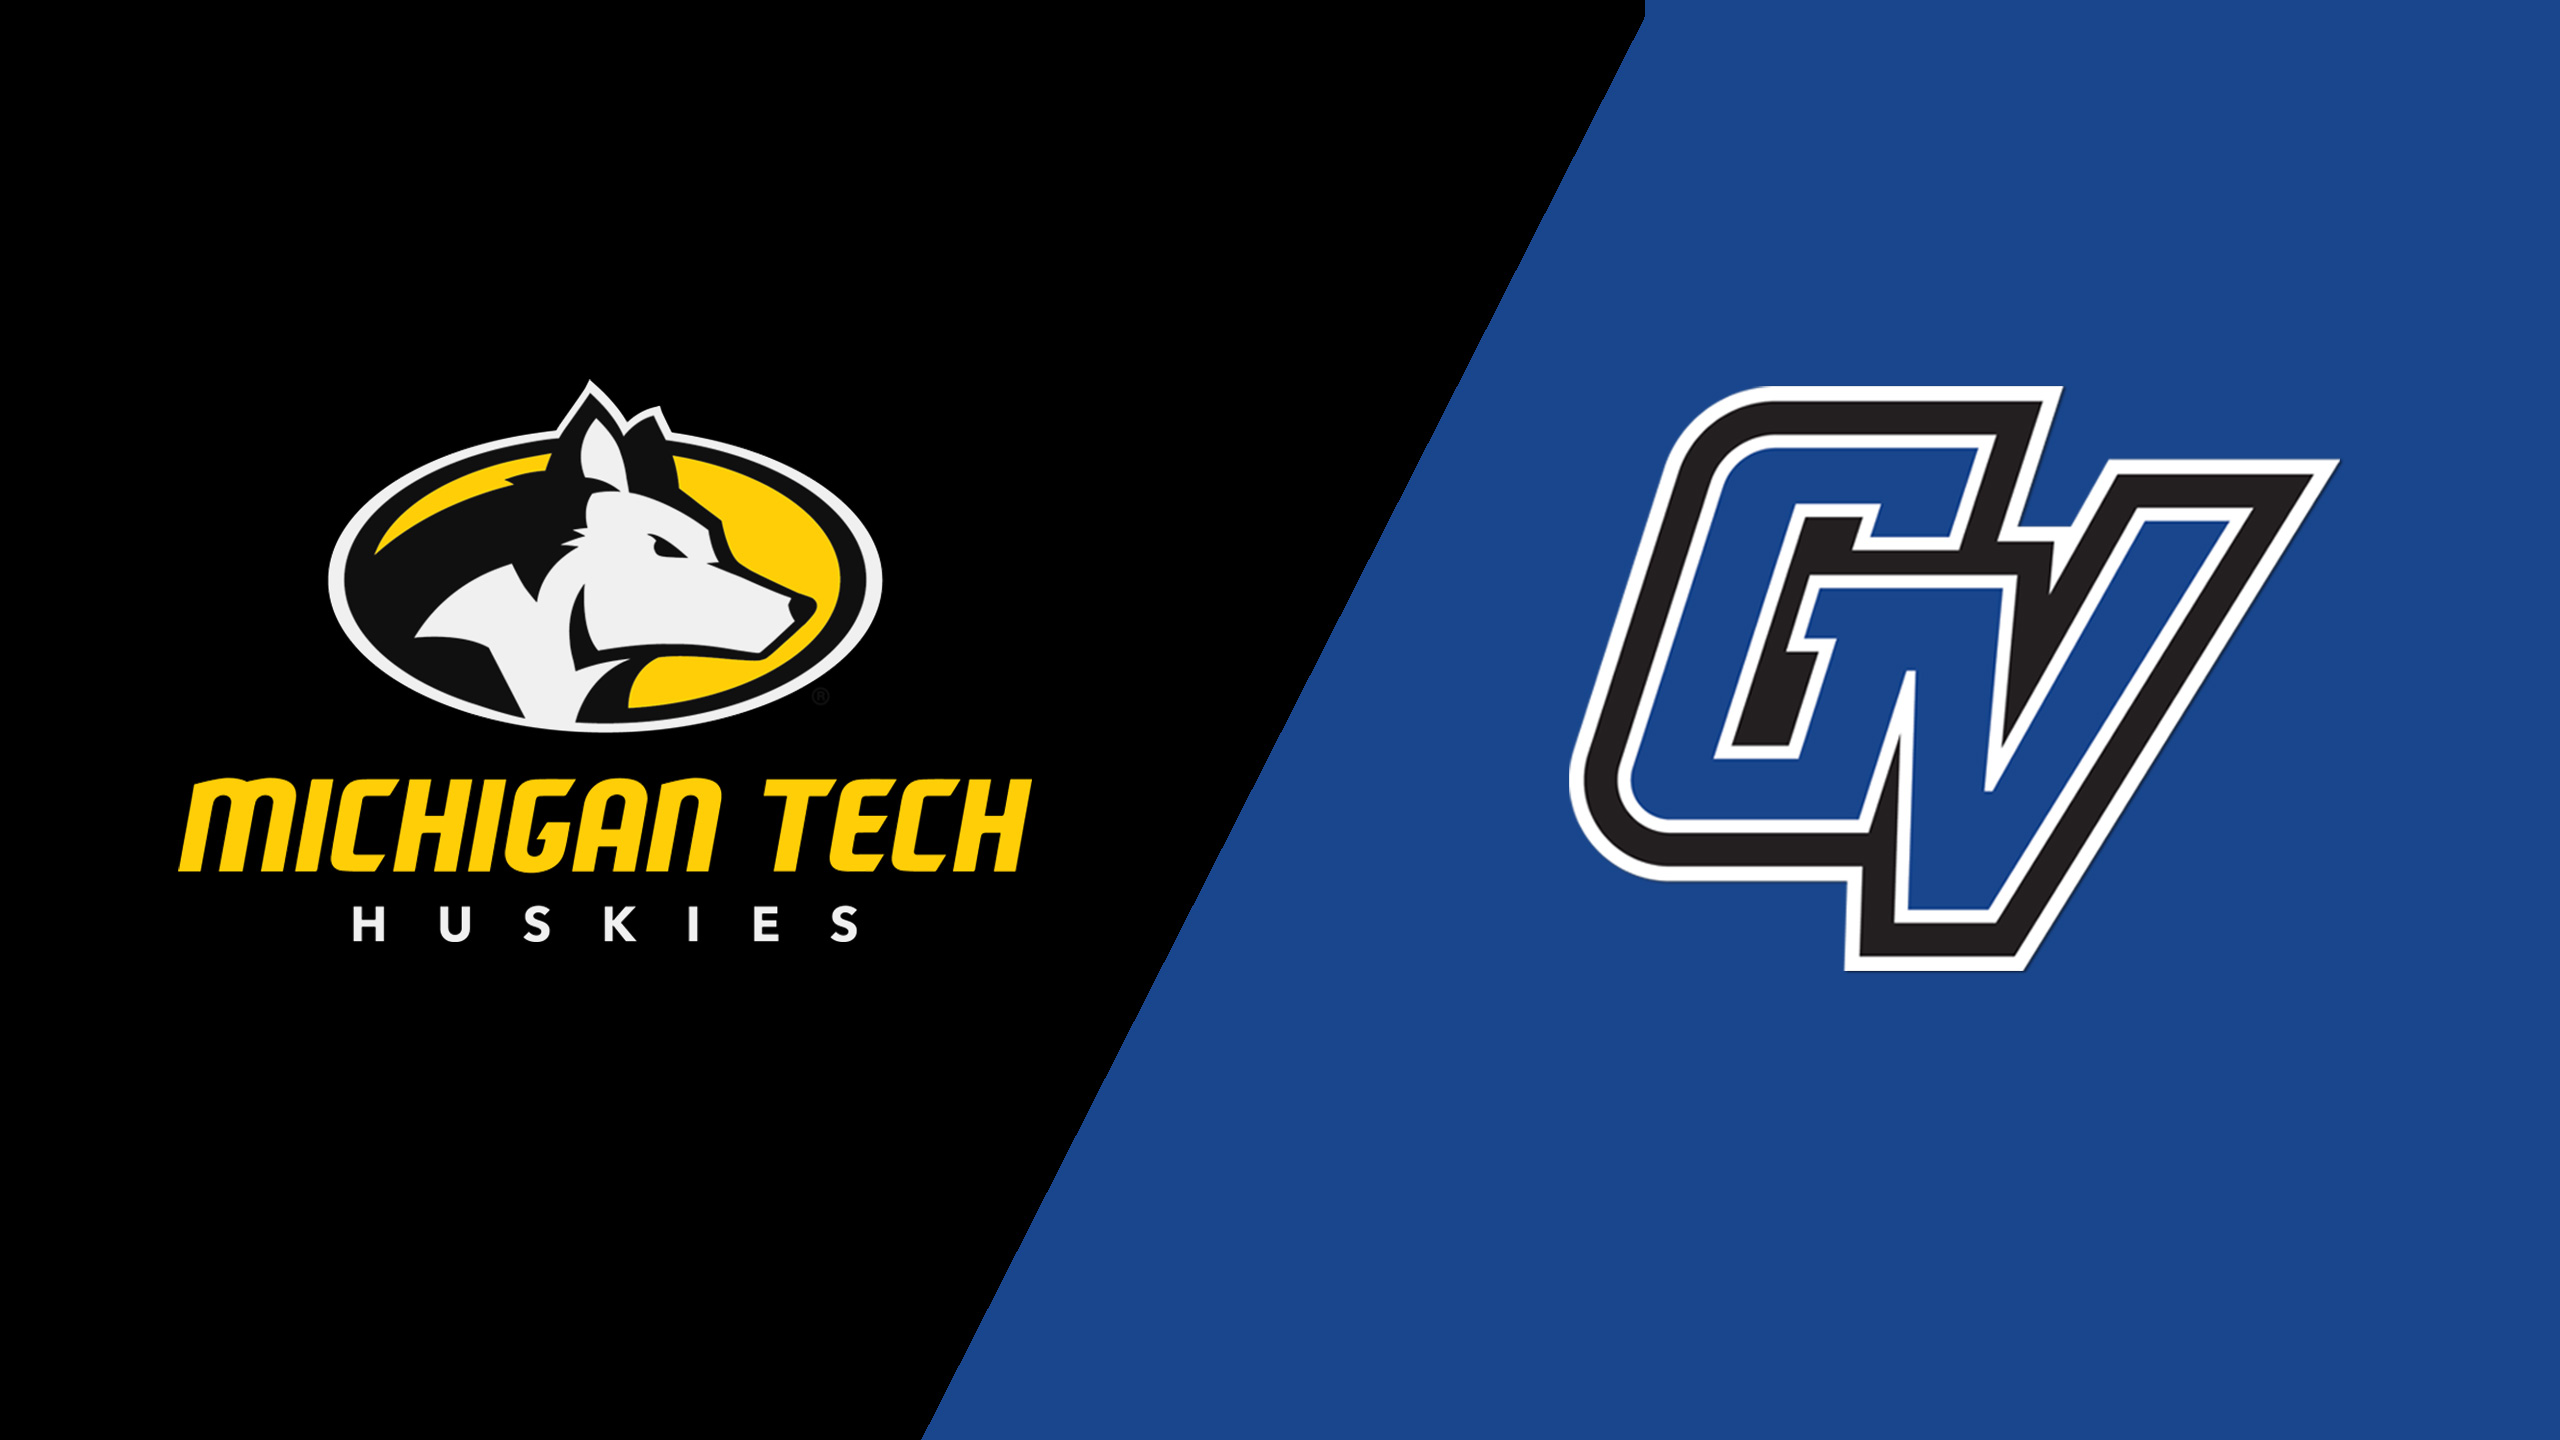 Michigan Tech vs. Grand Valley State (Football)